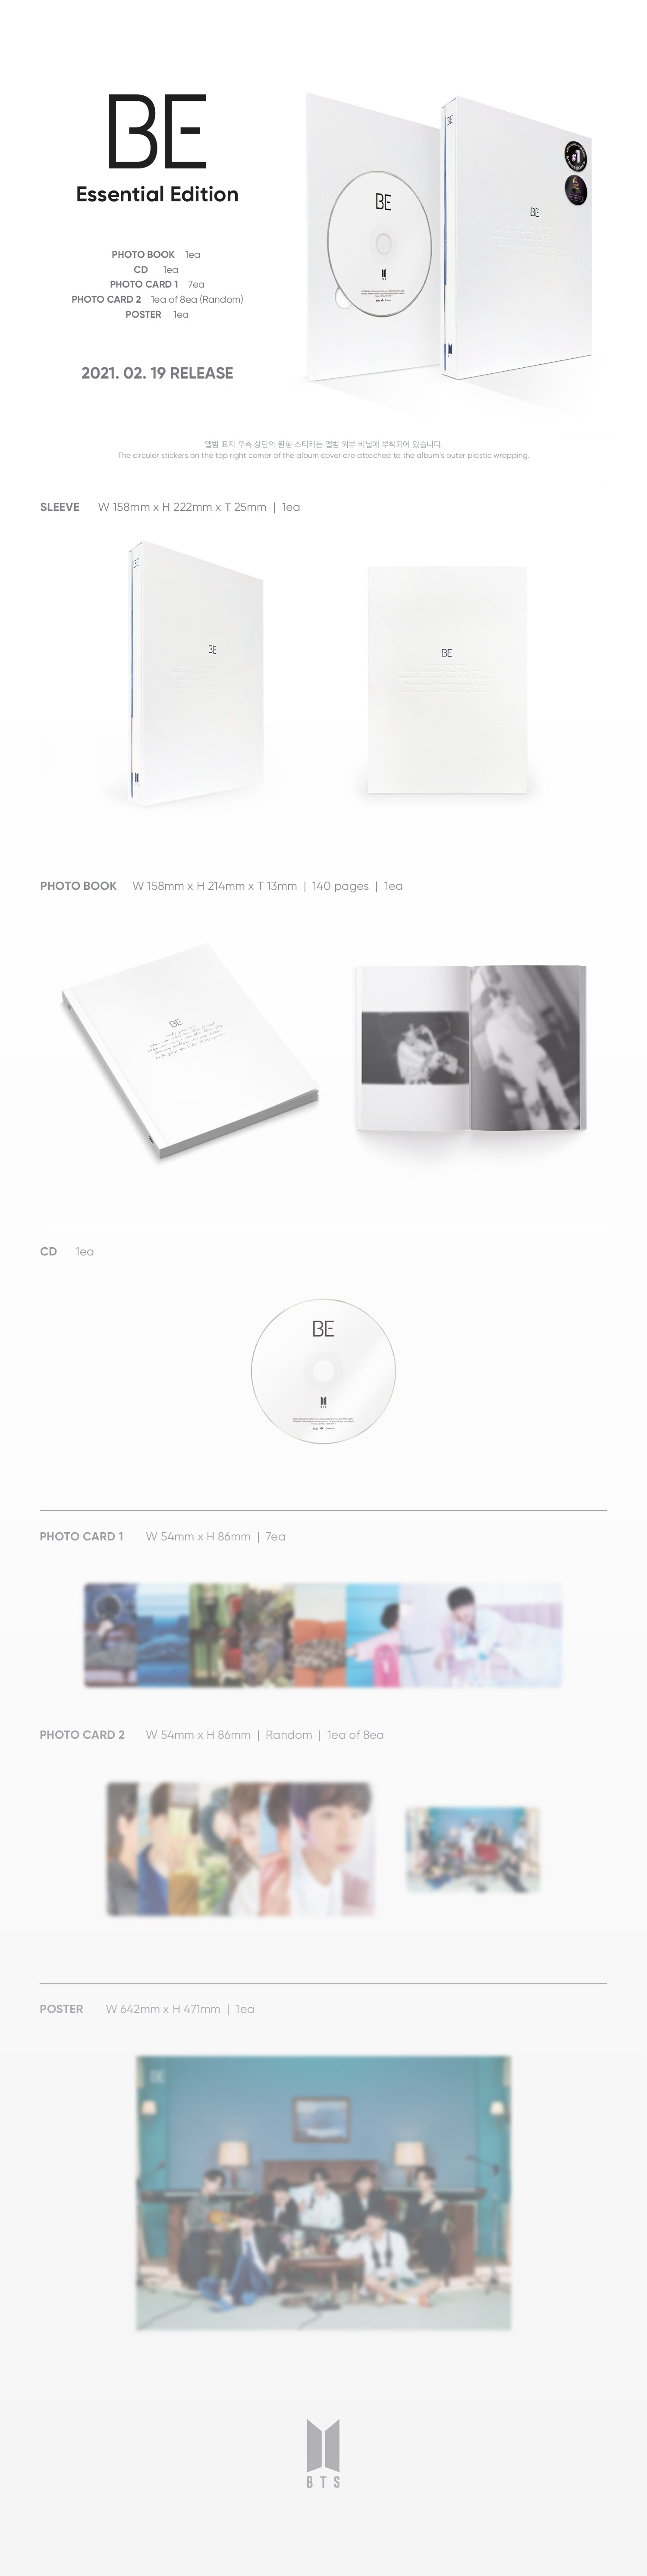 [Pre Order] BTS - BE [Essential Edition] Product Details